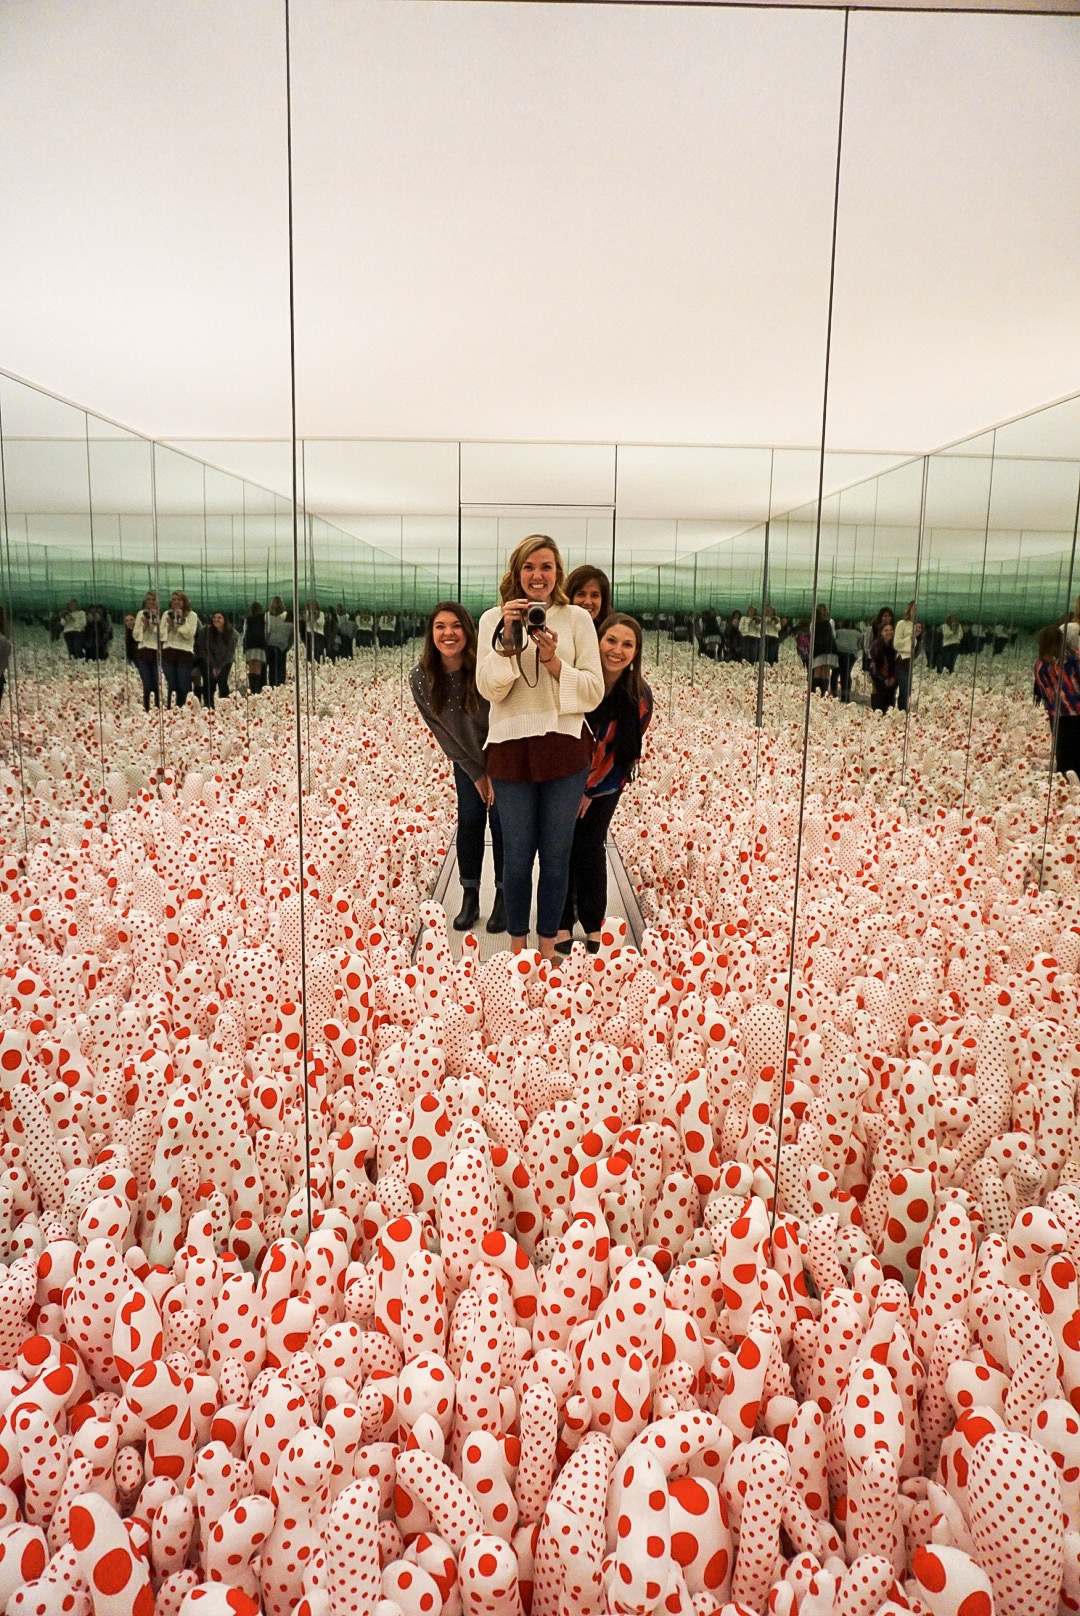 Yayoi Kusama, Infinity Mirror, High Museum of Art, Atlanta